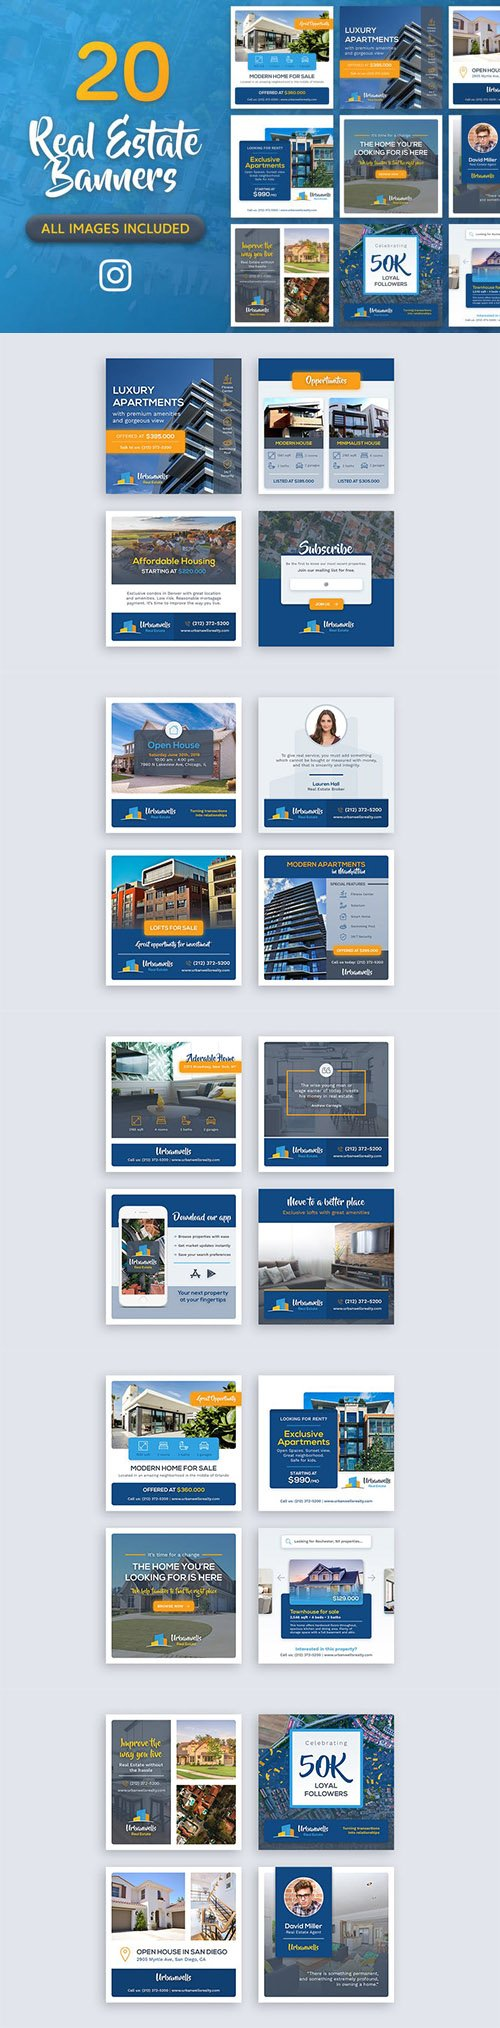 20 Real Estate Banners 2018